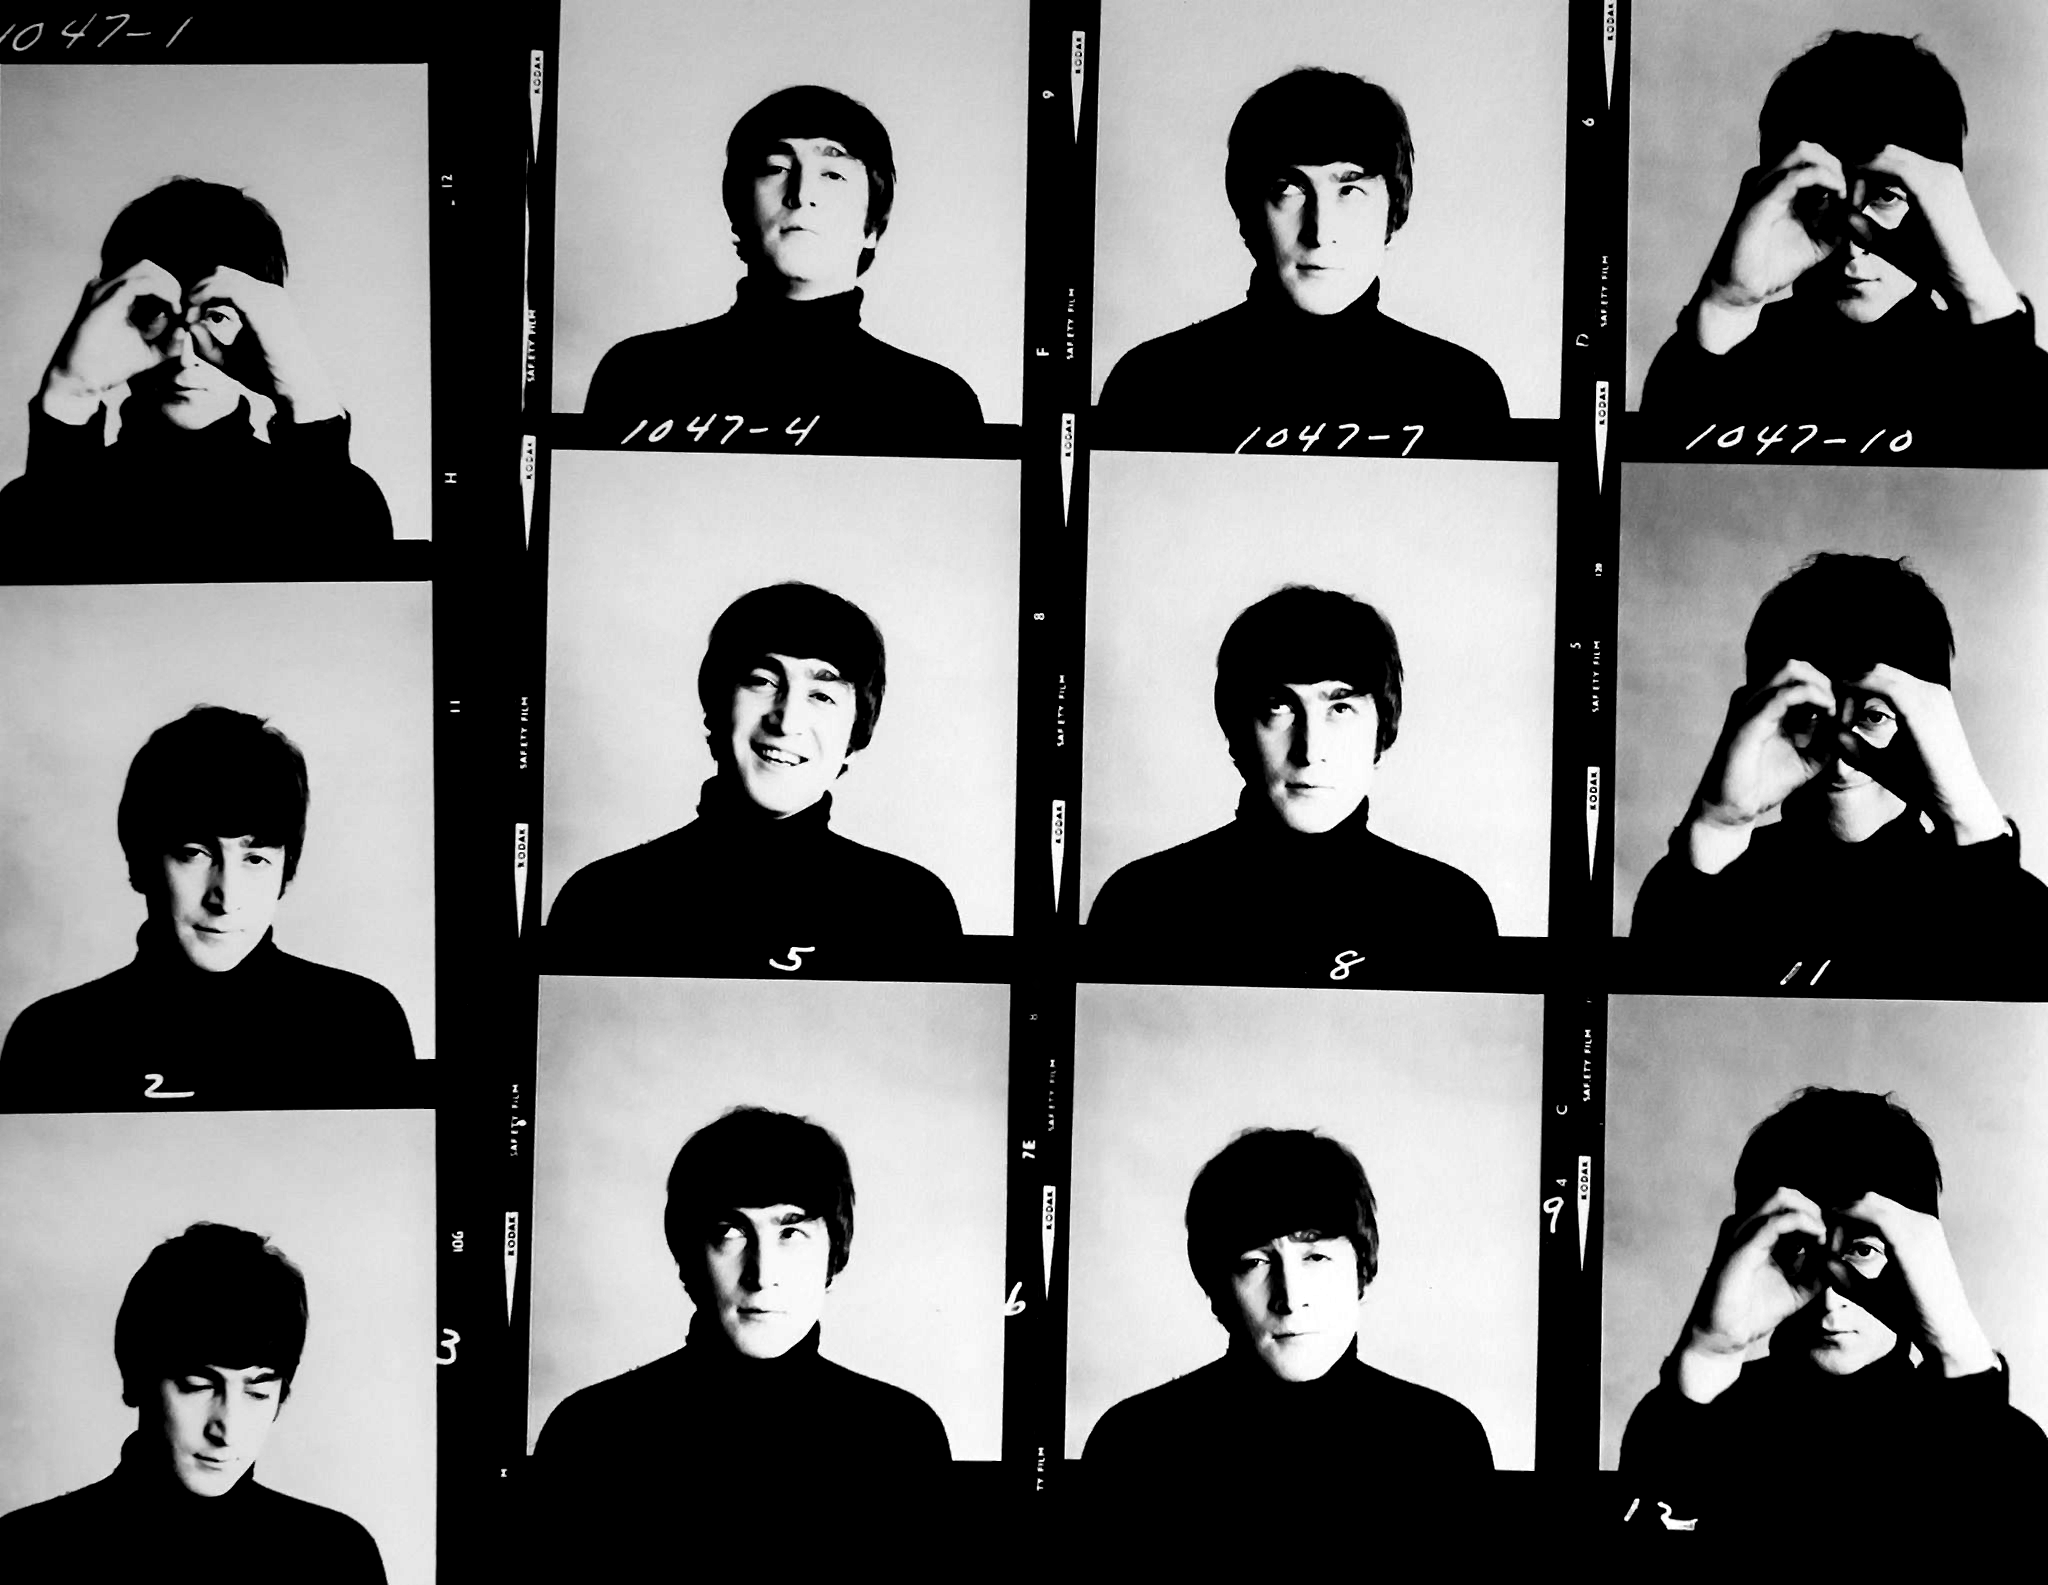 John Lennon contact sheet from A Hard Day's Night : beatles.